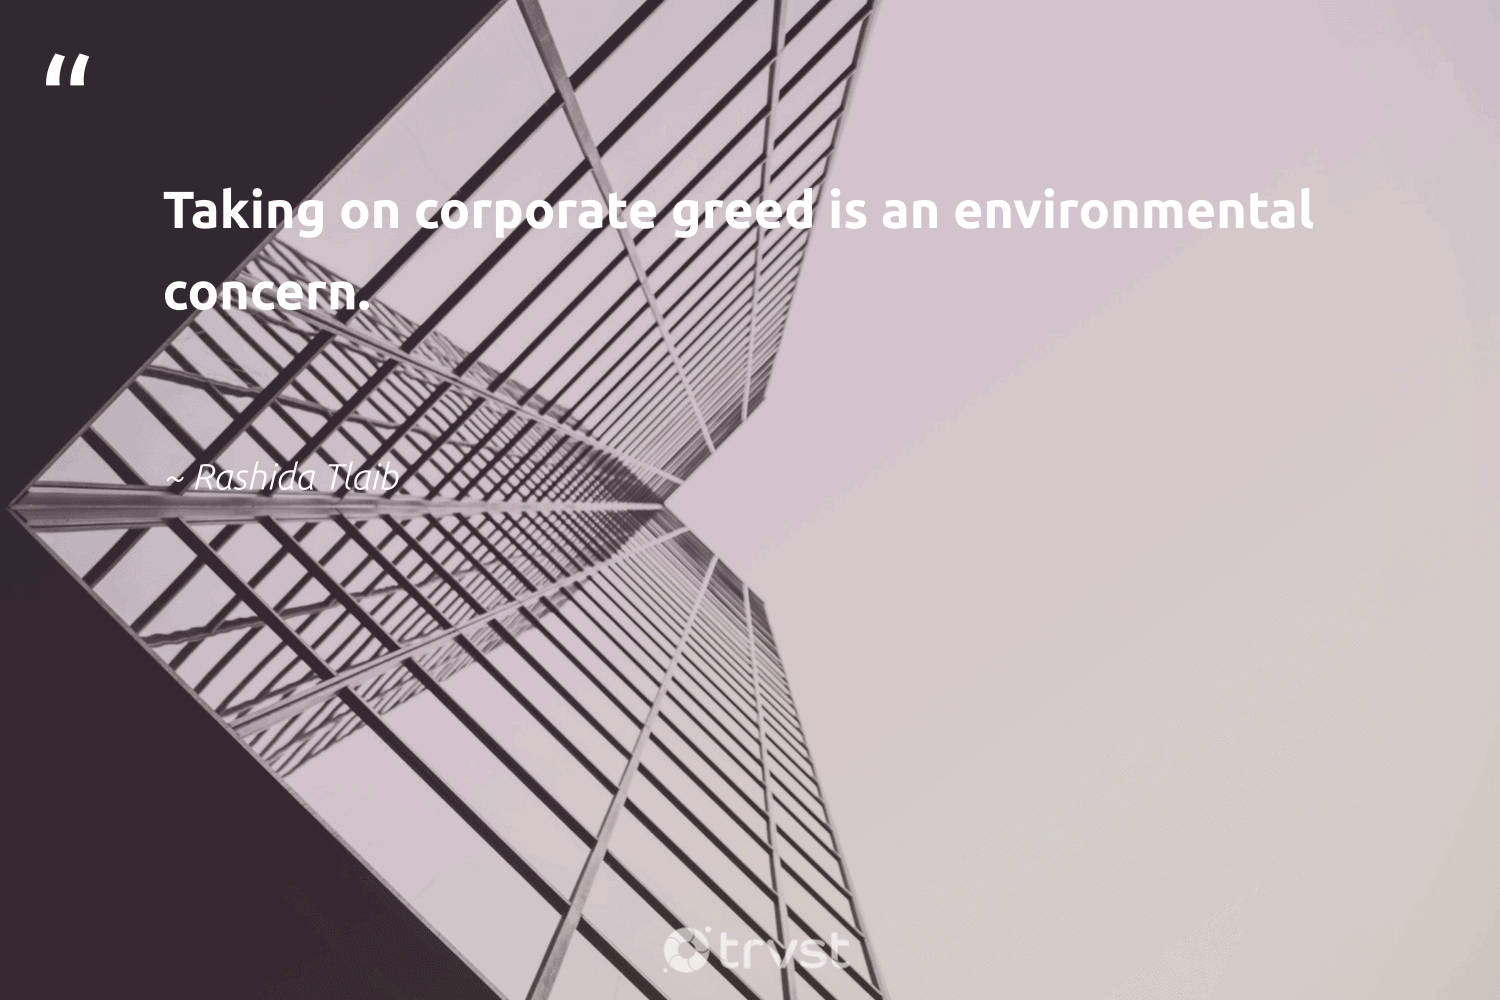 """""""Taking on corporate greed is an environmental concern.""""  - Rashida Tlaib #trvst #quotes #environmental #weareallone #bethechange #ethicalbusiness #thinkgreen #sharedresponsibility #collectiveaction #dogood #dotherightthing #ecoconscious"""